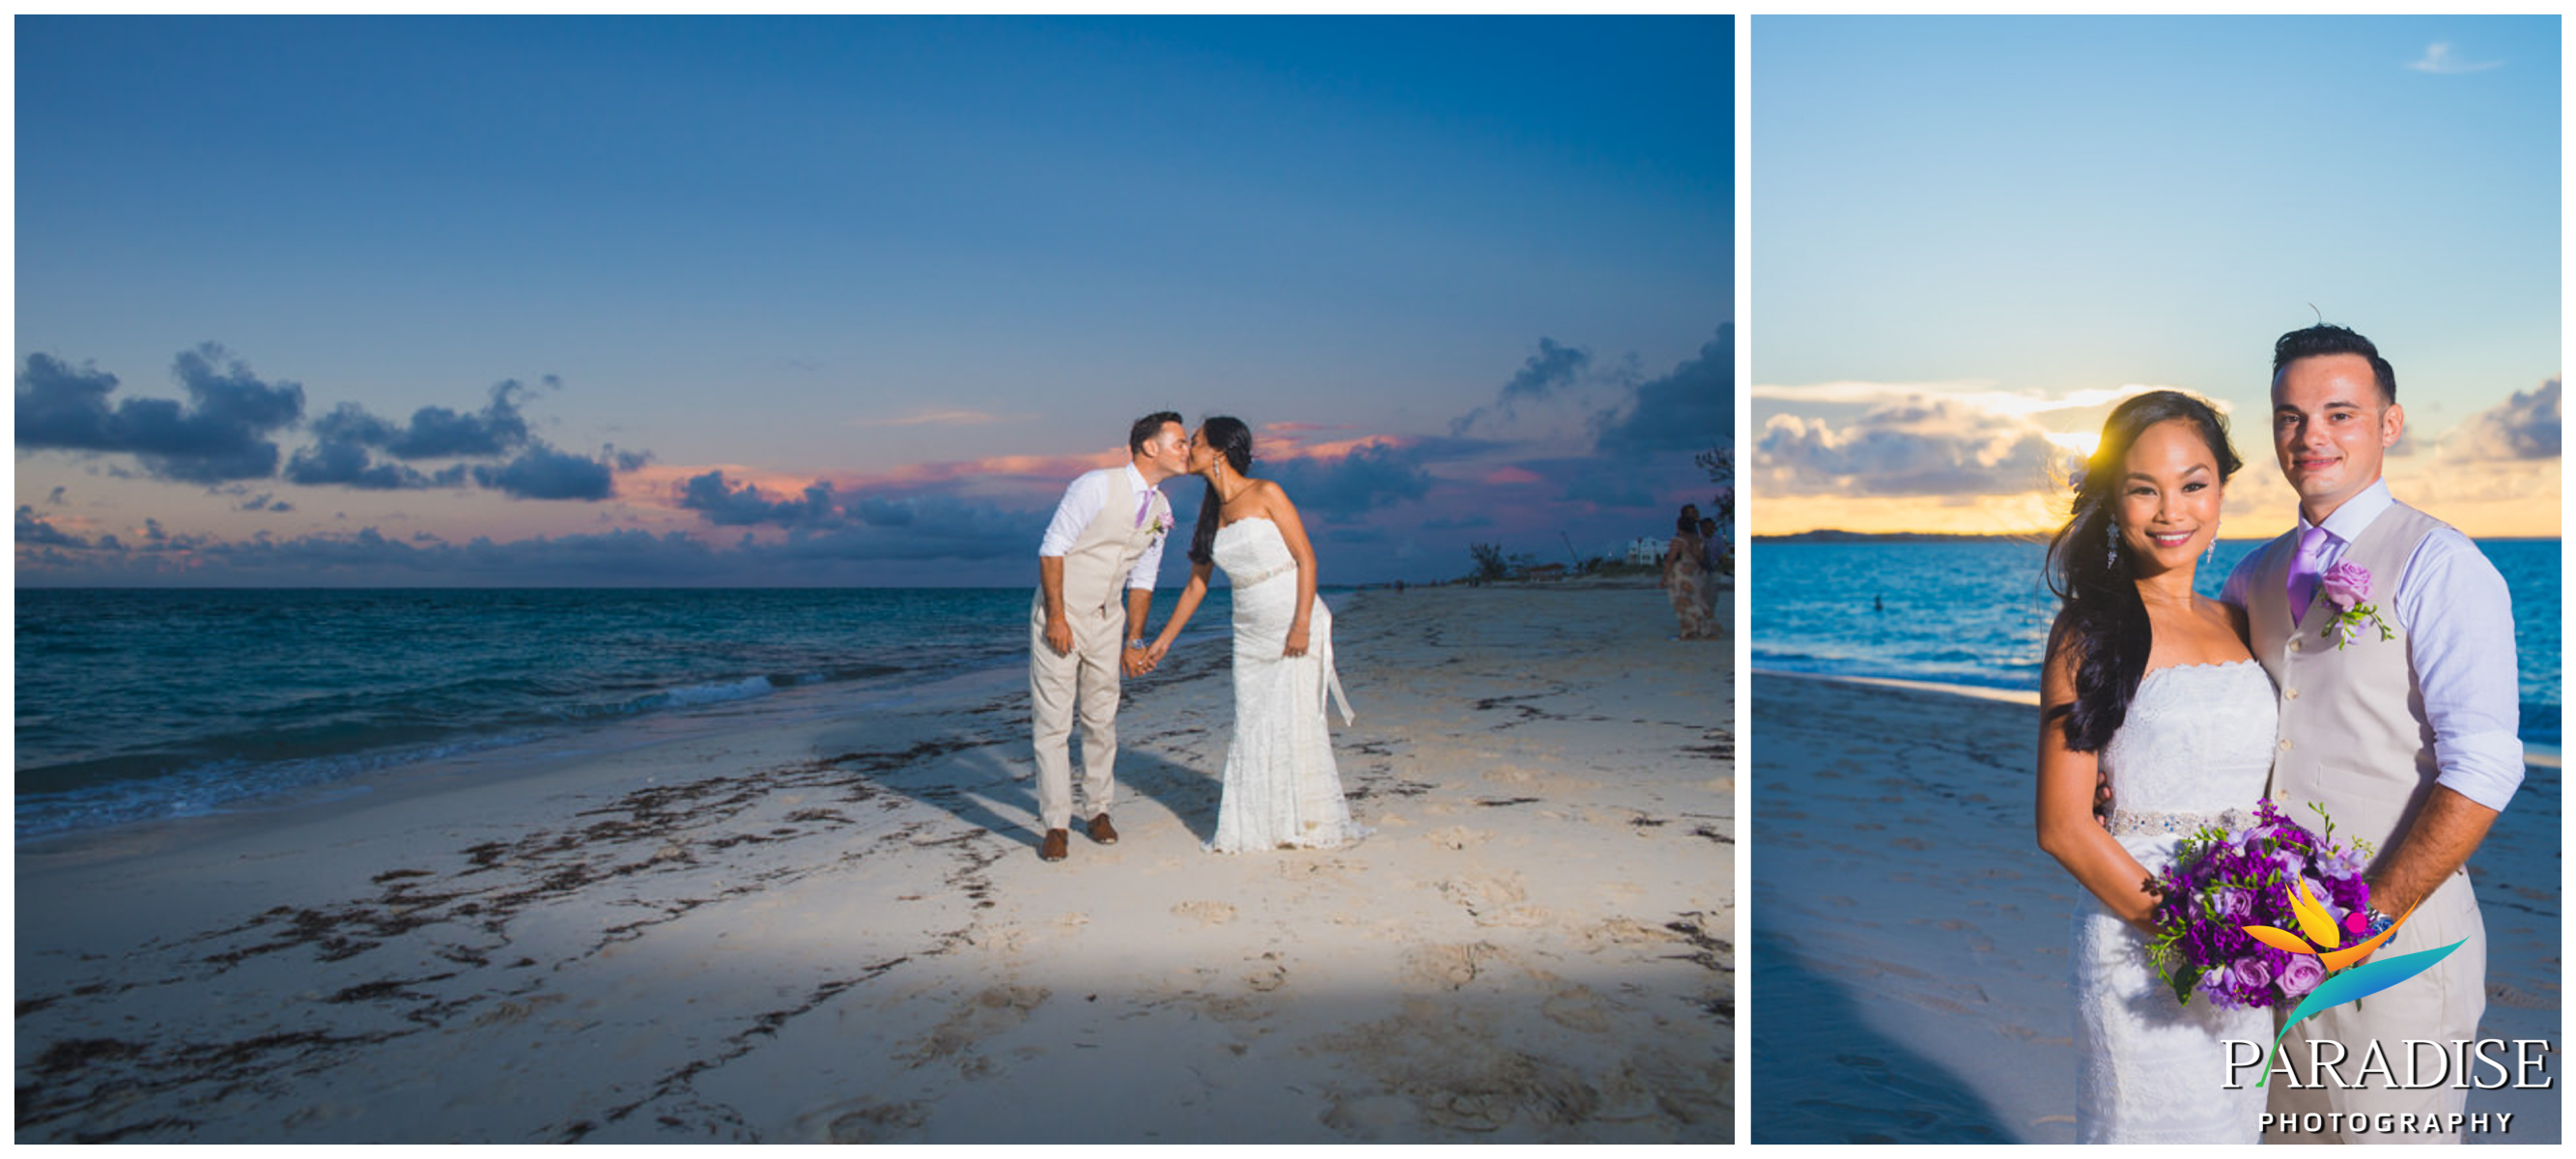 031 destination-wedding-turks-and-caicos-nila-planner-island-caribbean-somerset-bay-bistro-grace-bay-beach